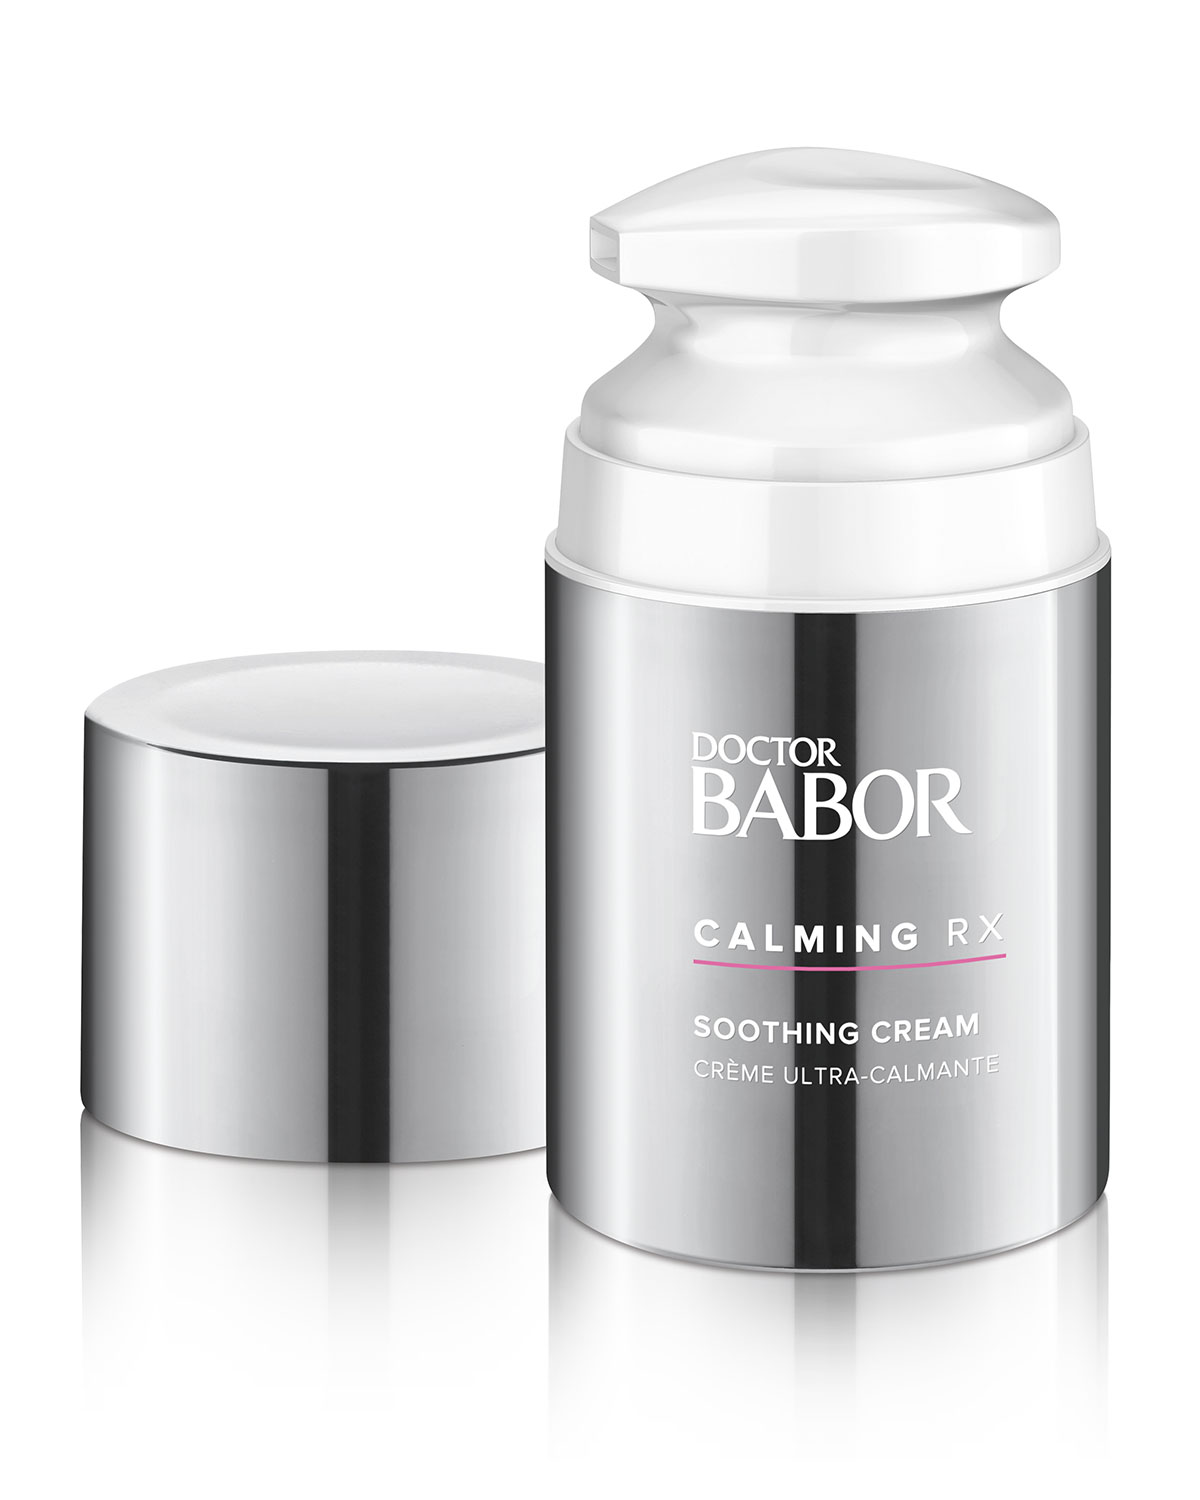 CALMING RX Soothing Cream